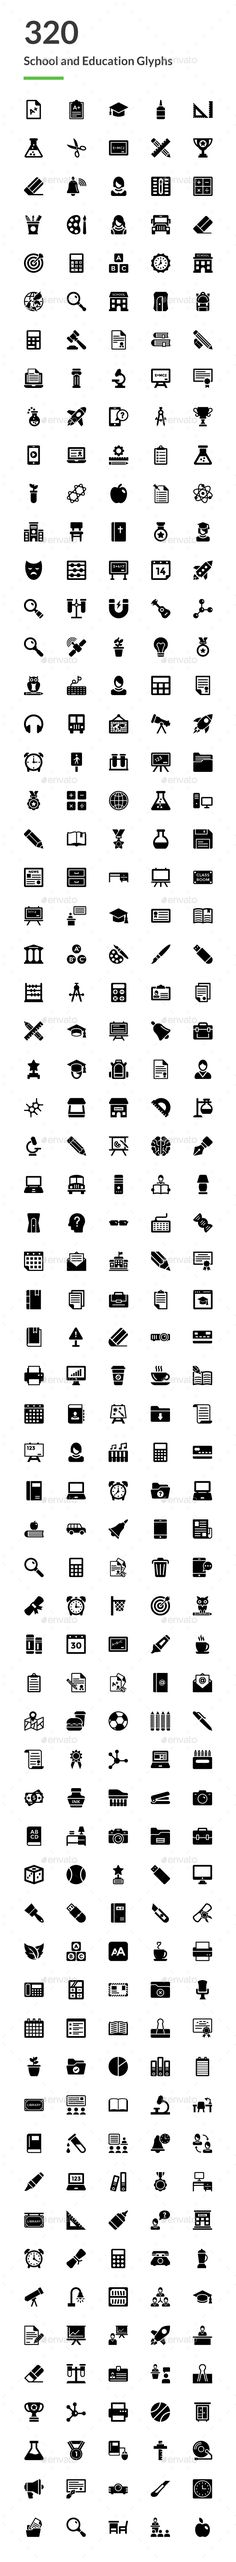 320 School and Education Glyph Icons